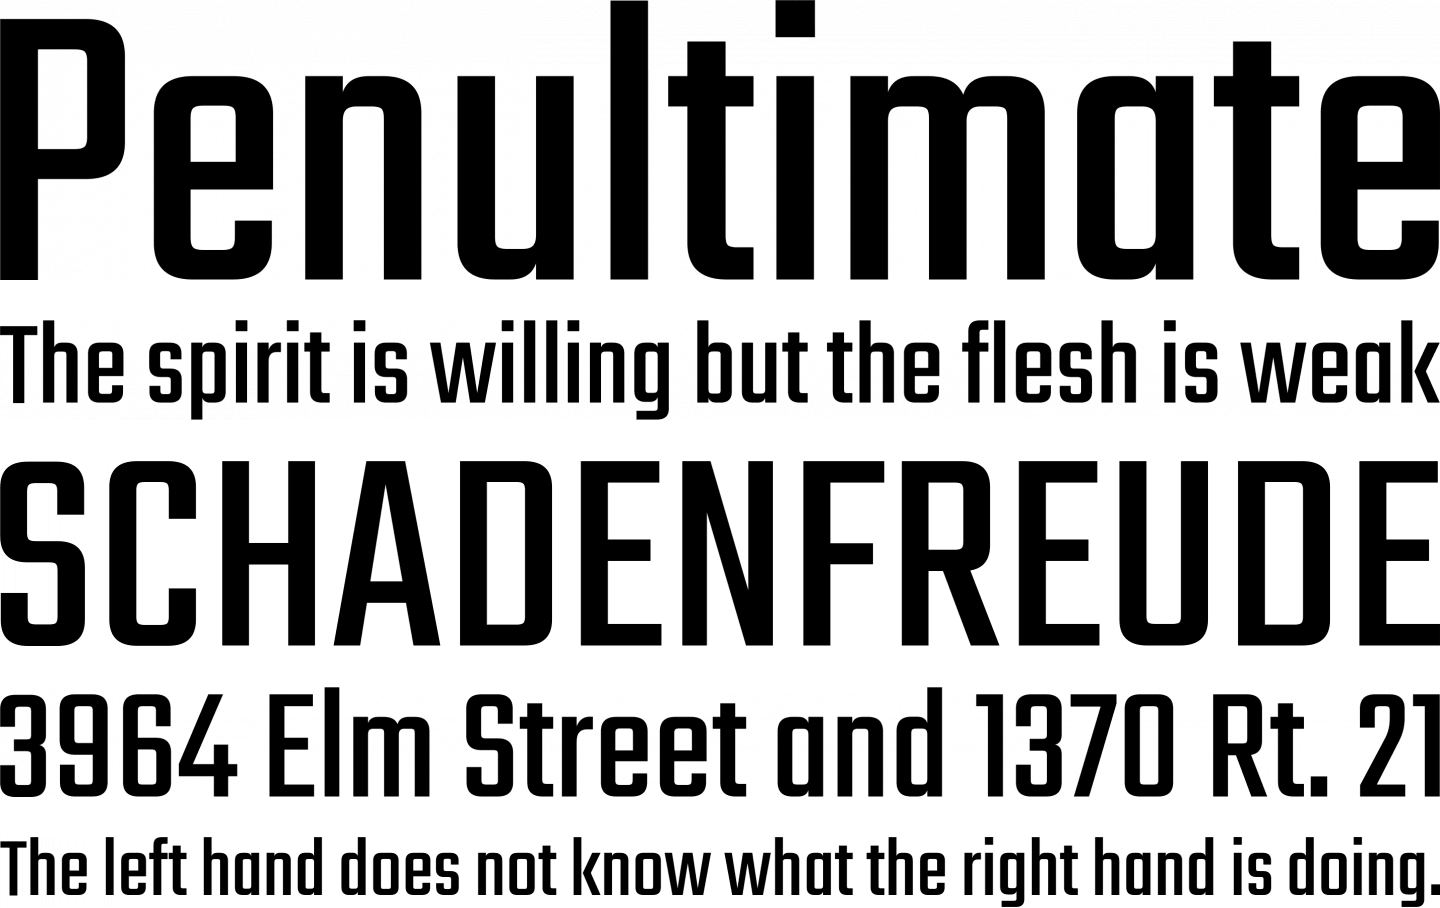 Teko Font Free by Indian Type Foundry » Font Squirrel